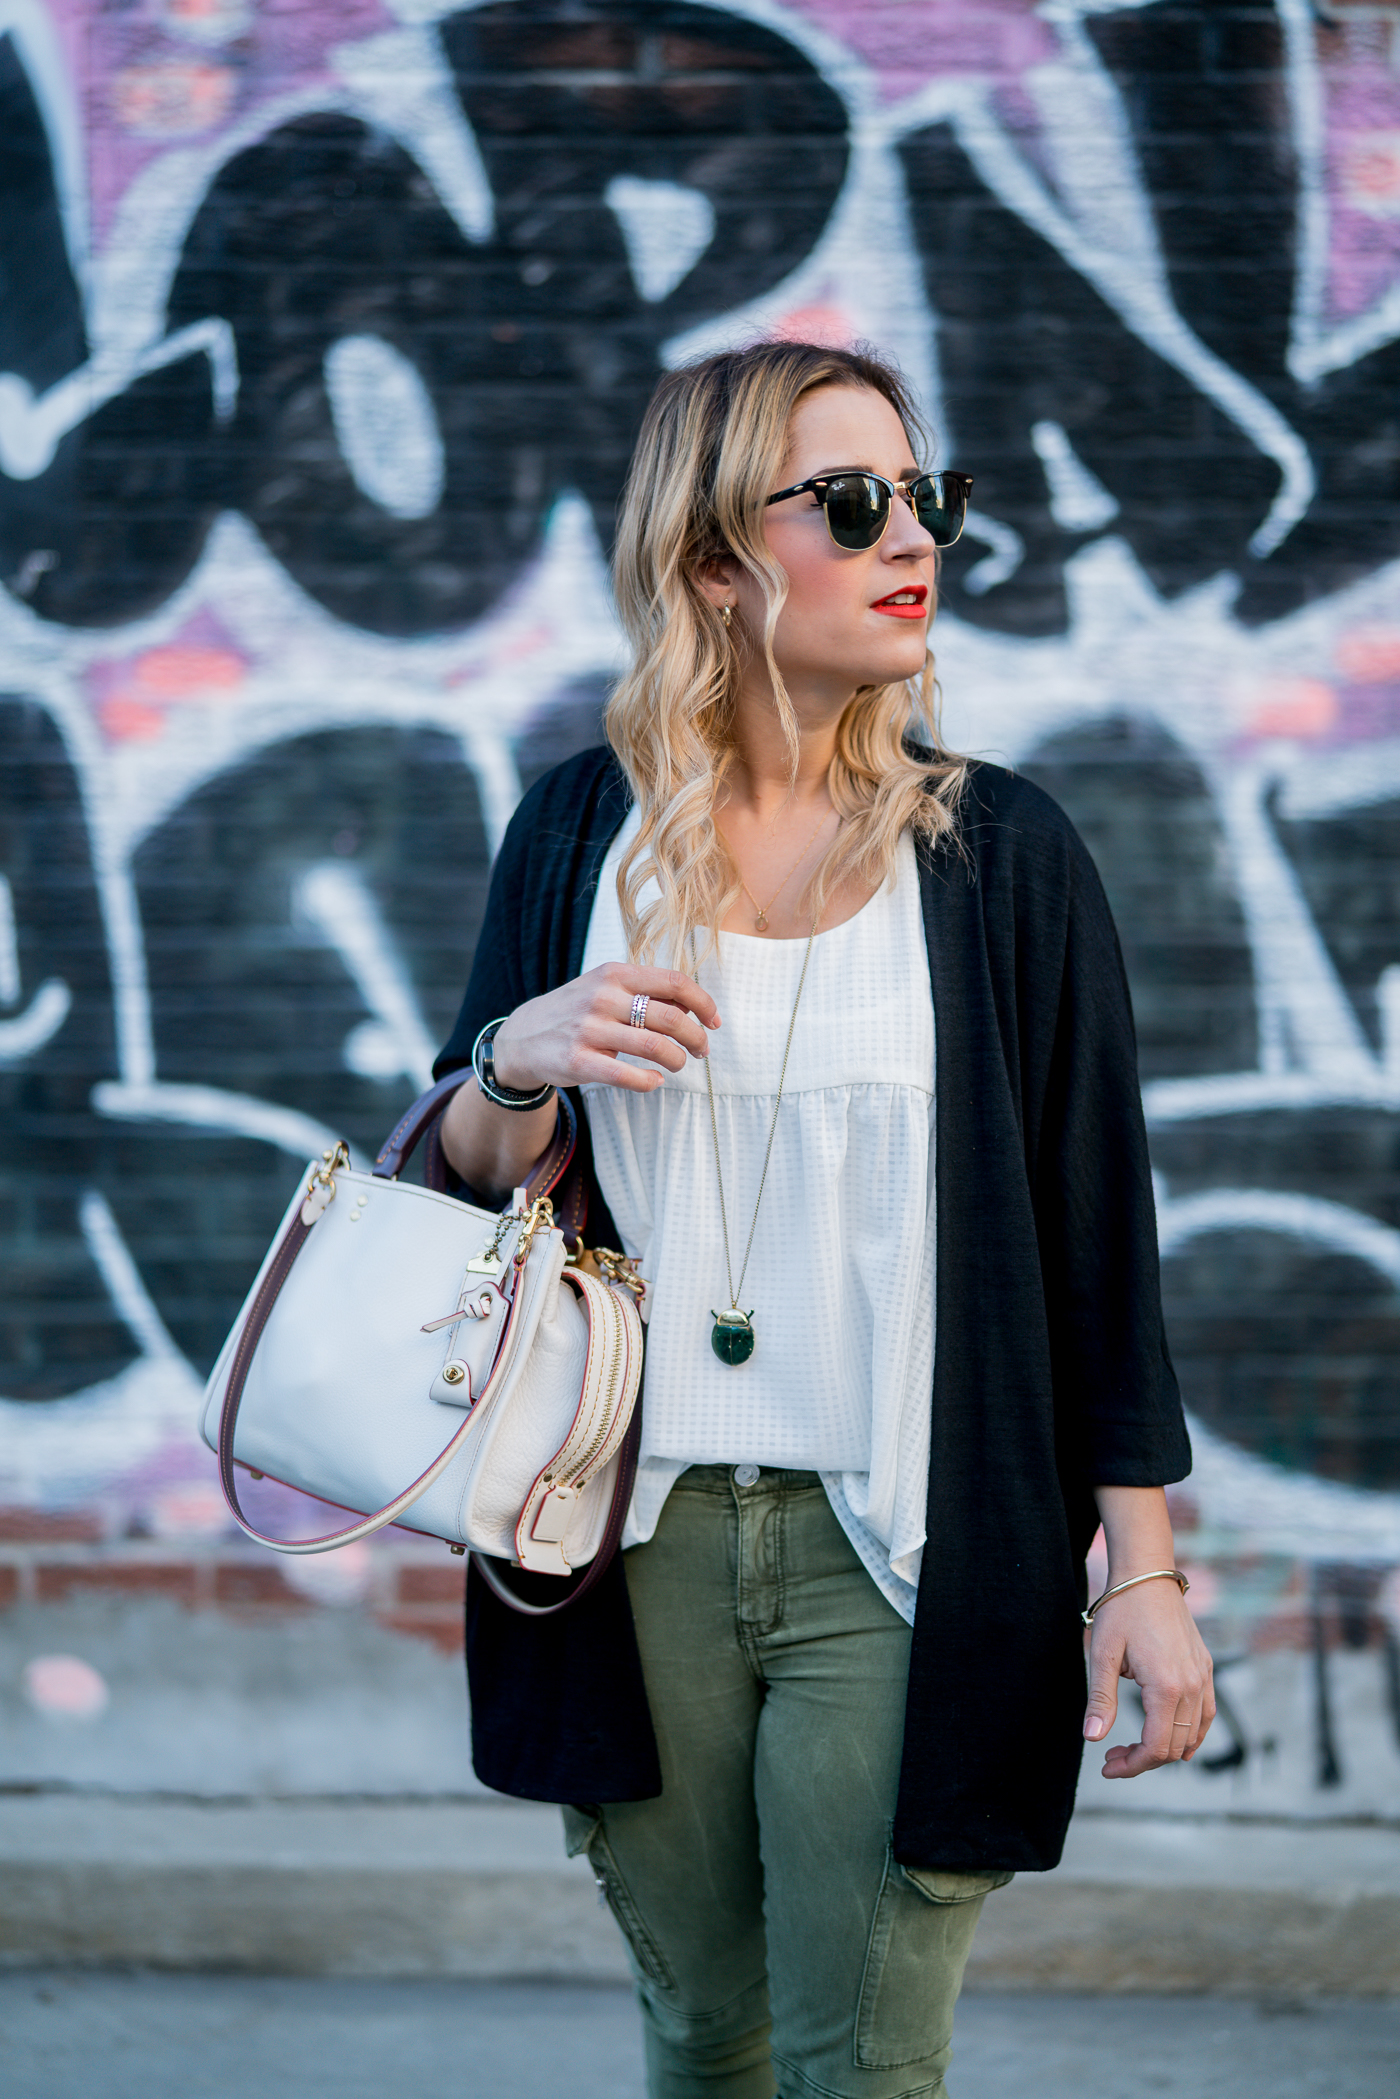 Toronto fashion and lifestyle blogger, Jackie of Something About That Blog, wearing the Zlata cardigan from Aritzia with a Coach Rogue Bag